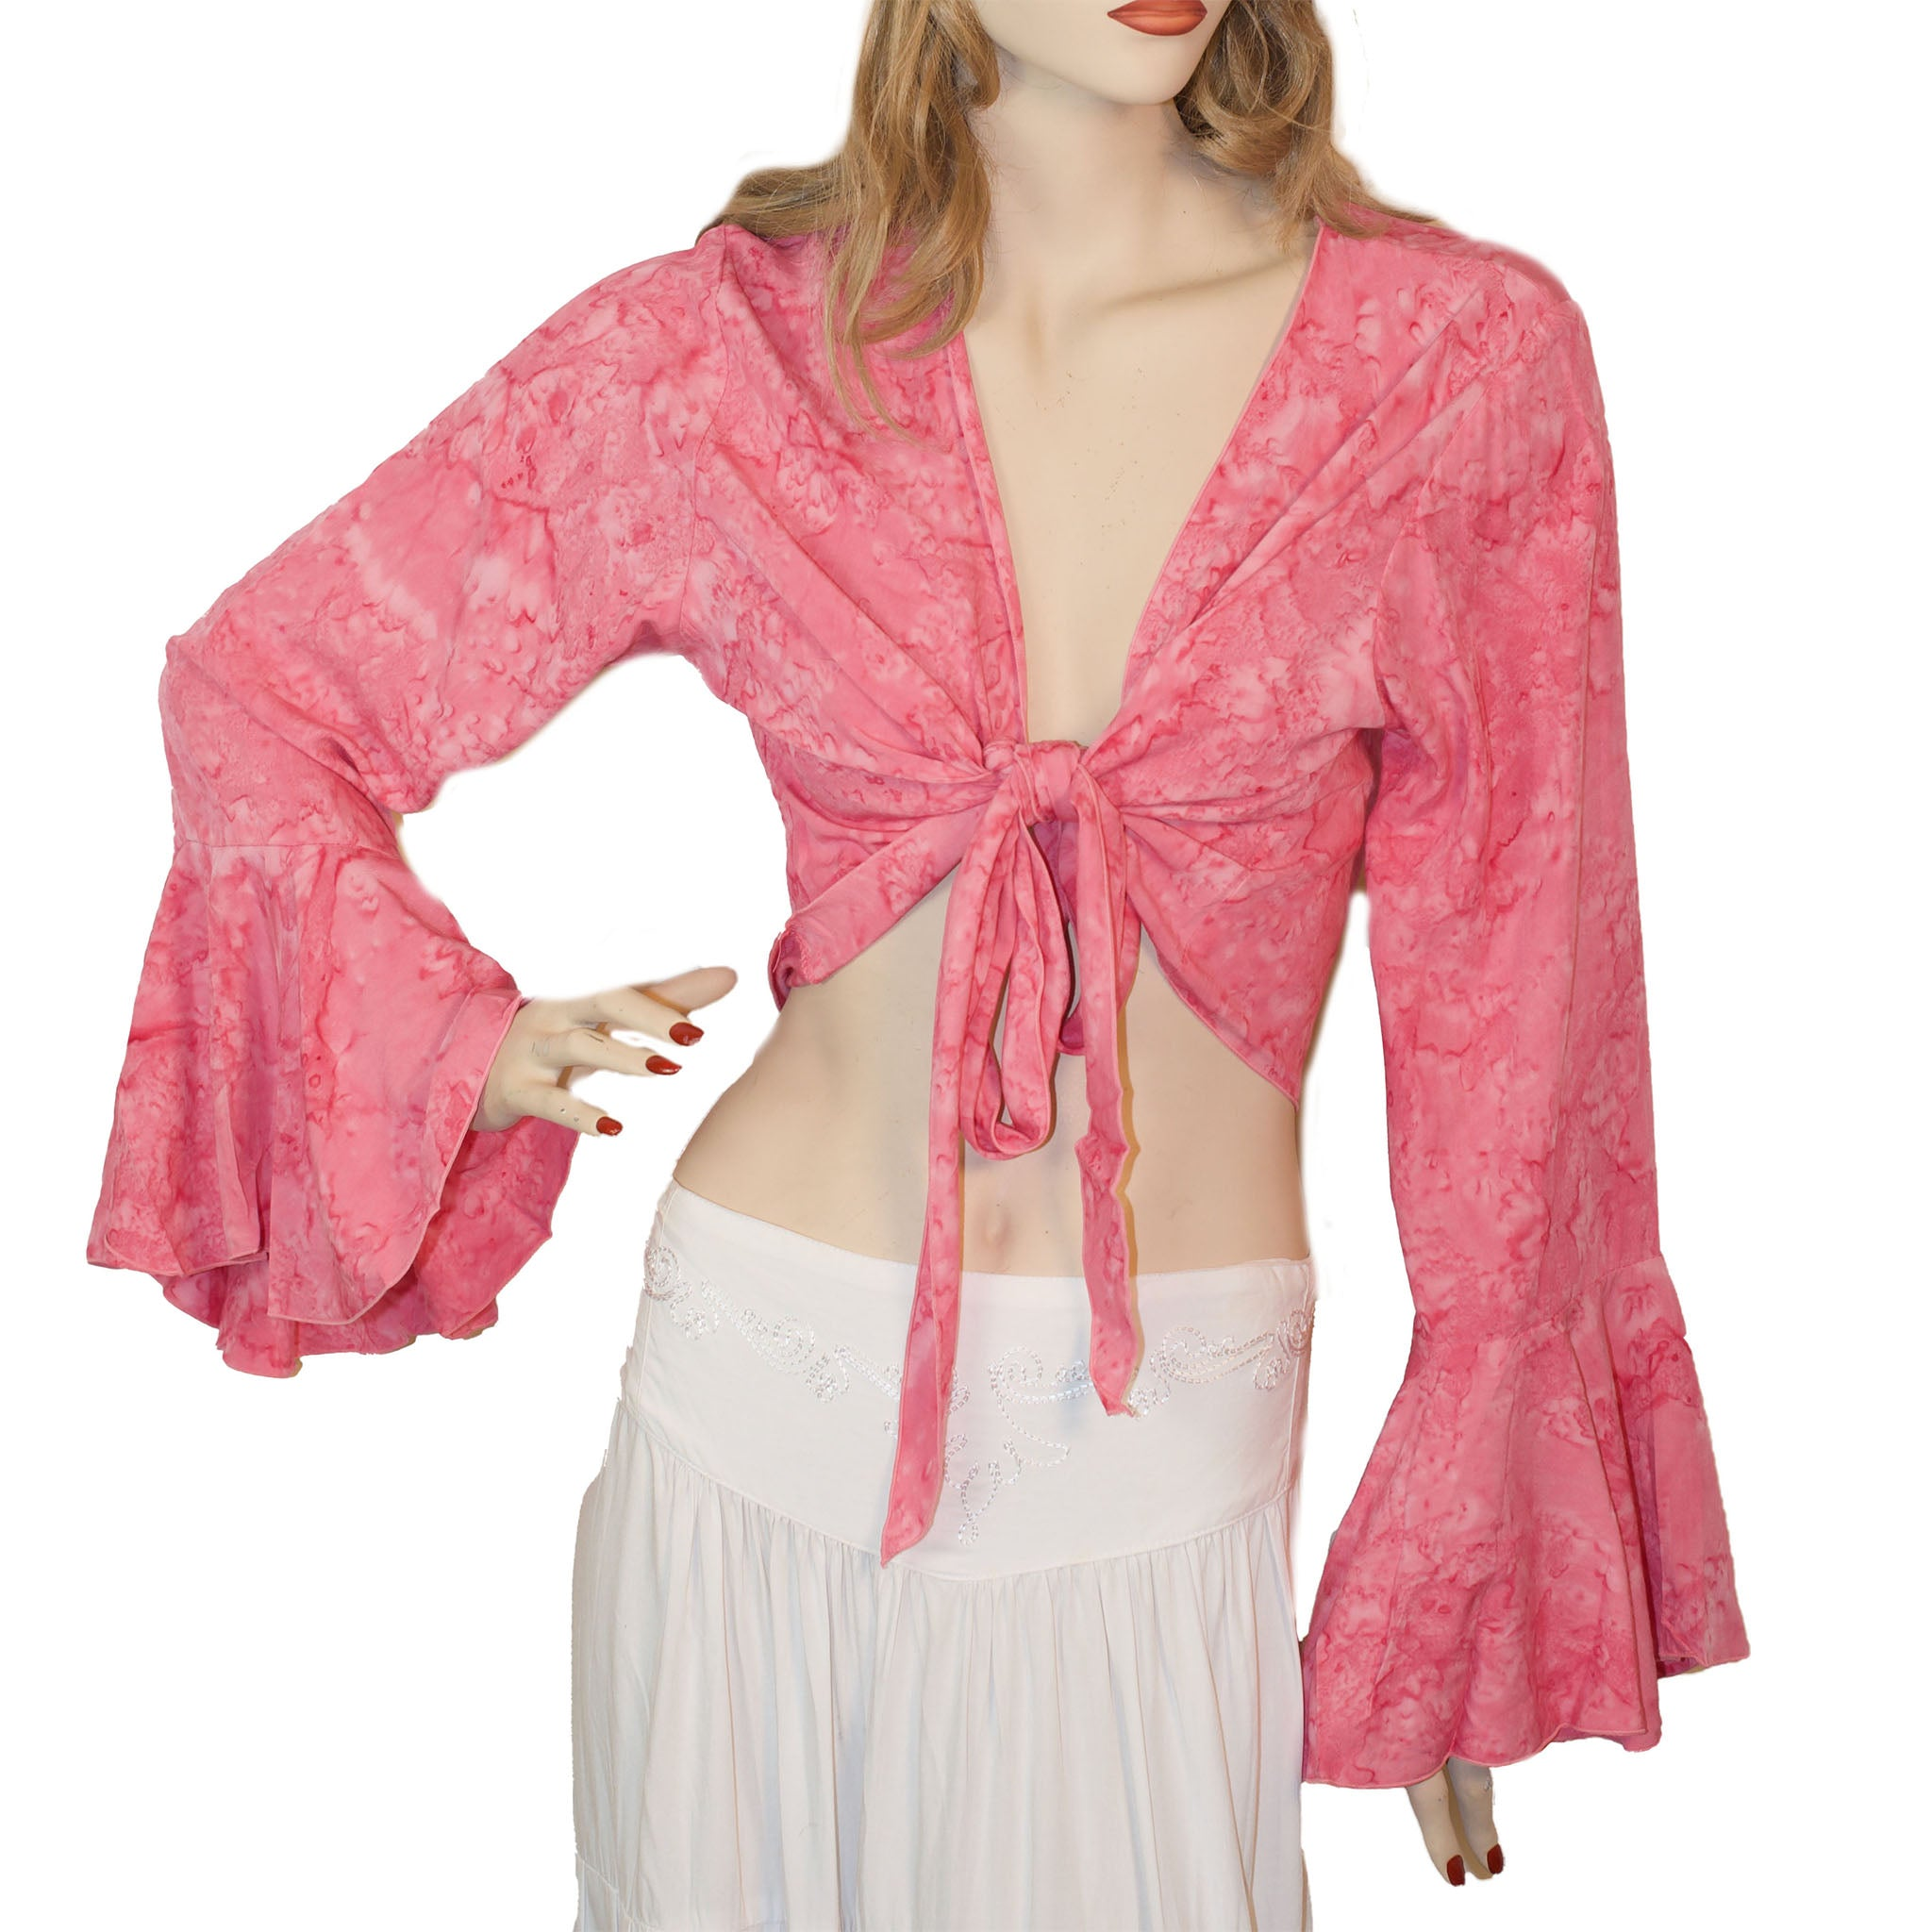 Womans Gypsy Top Renaissance Top Belly Dance Top pink